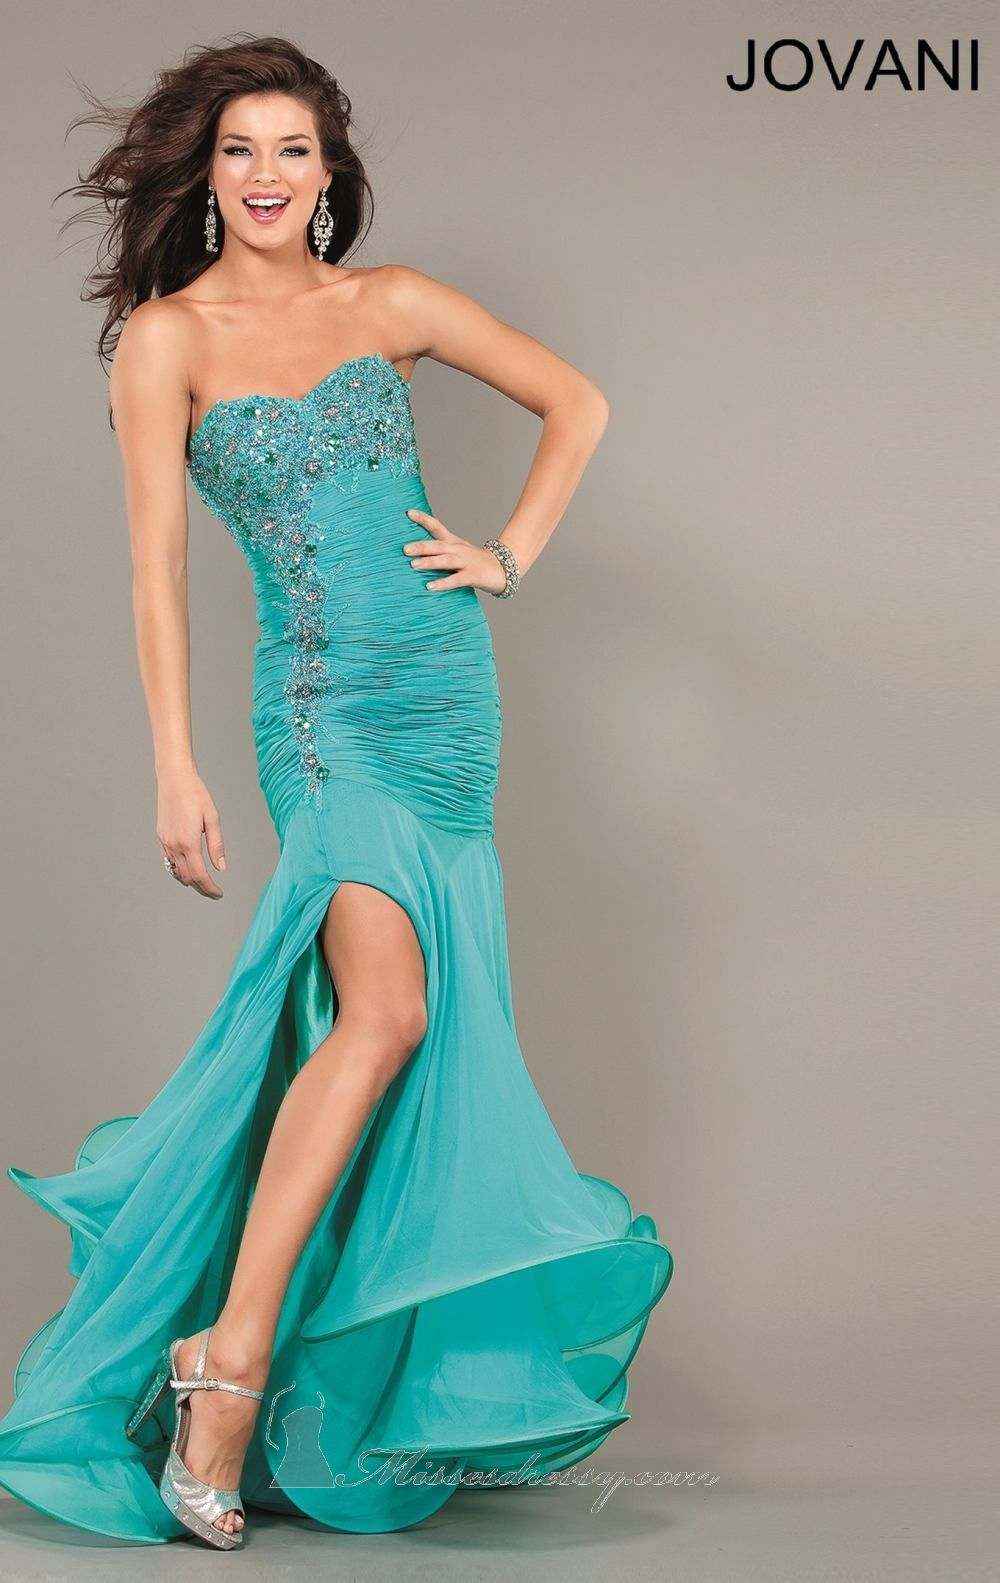 Jovani pageant gown $495 | Beautiful Gowns | Pinterest | Pageants ...